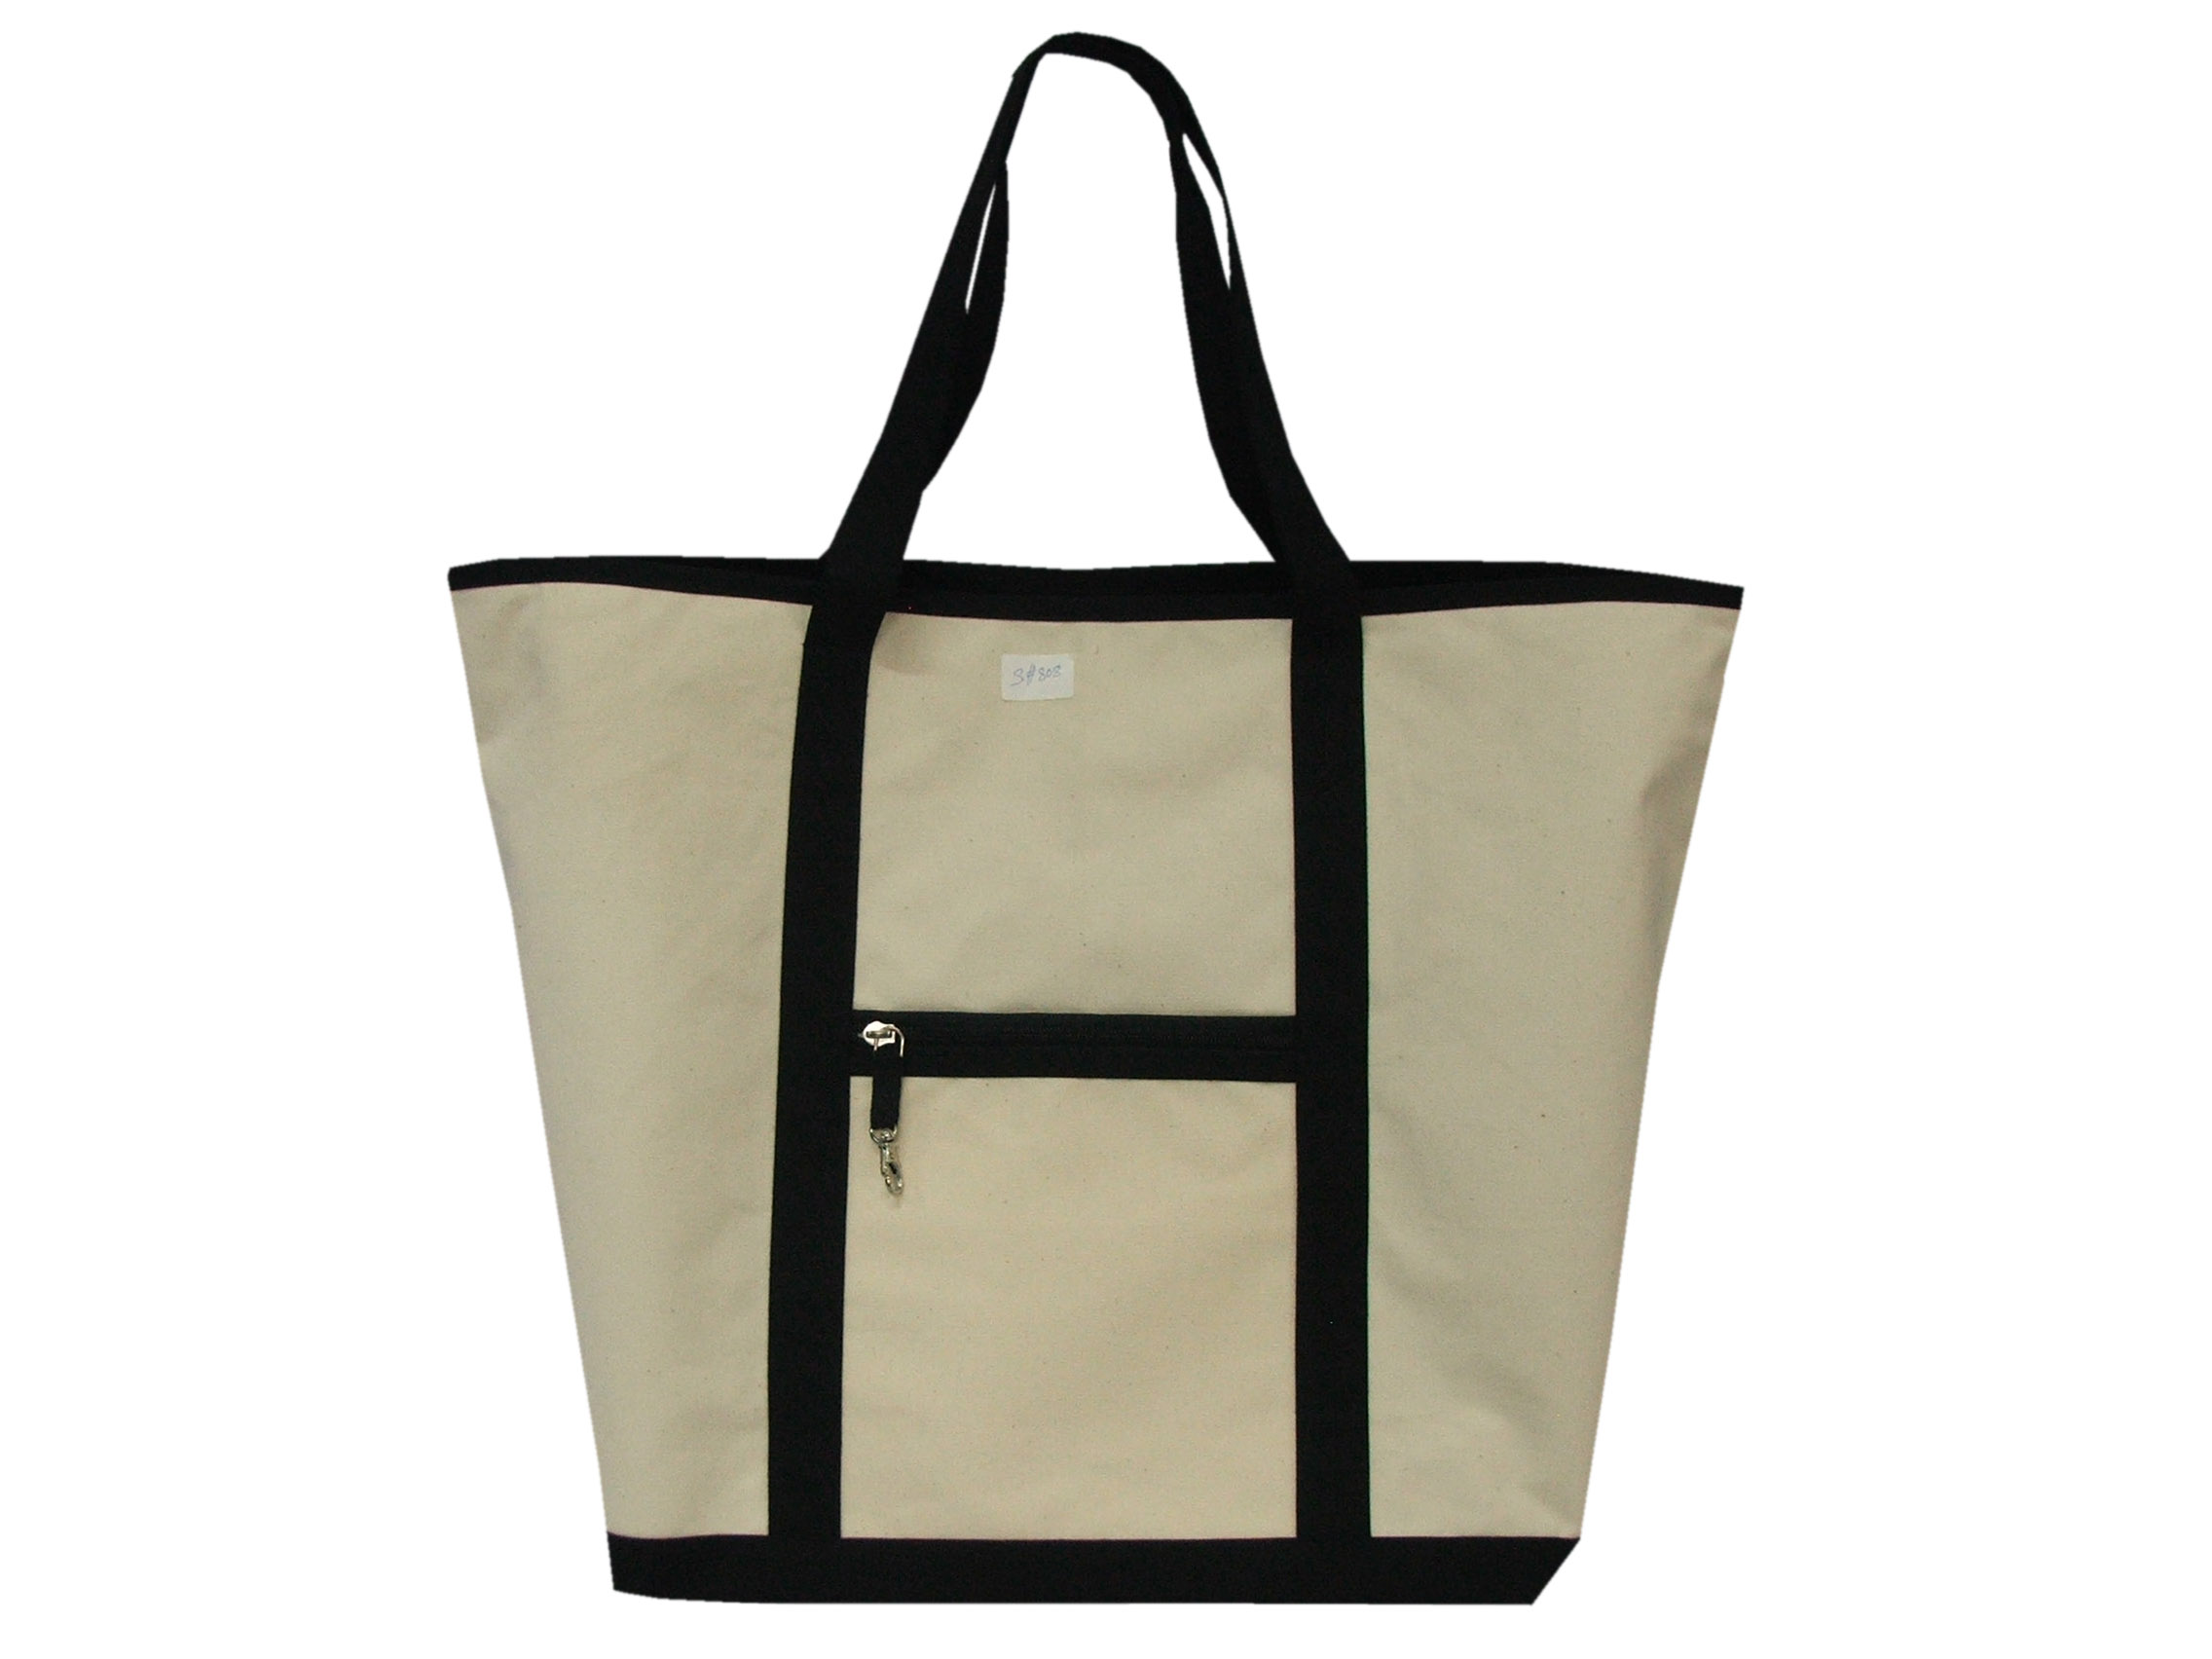 Deluxe Recycled Organic Canvas Tote Bag